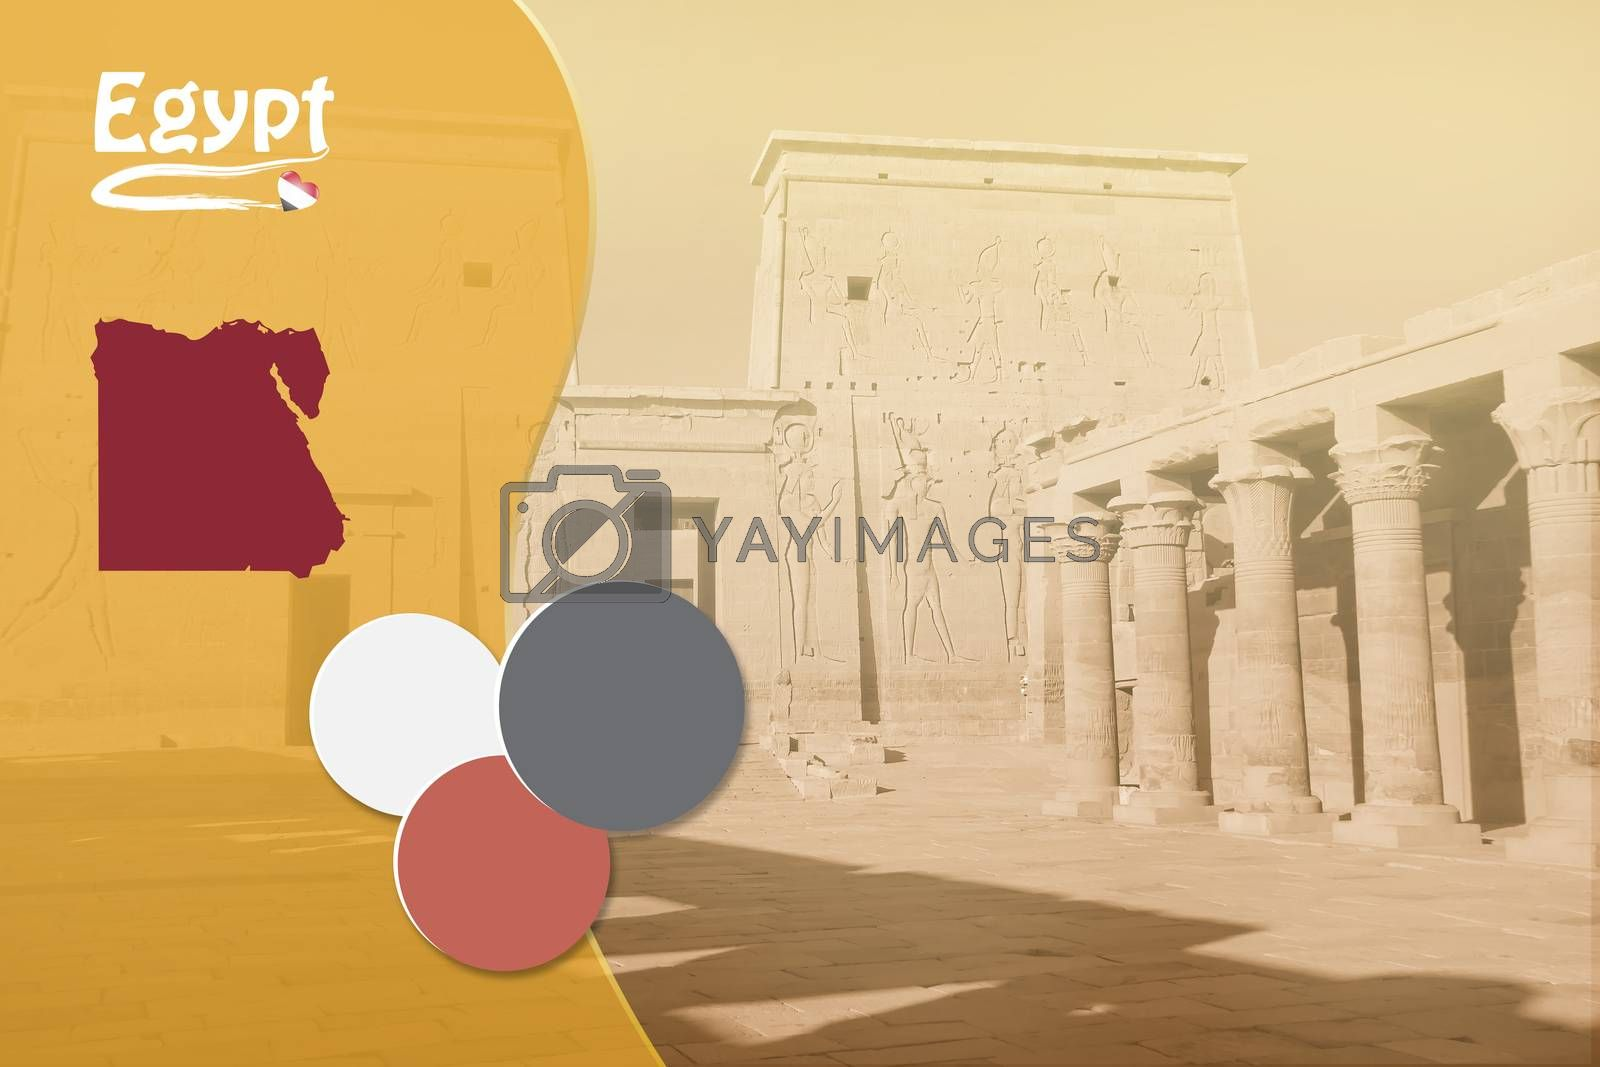 Travel template with Egyptian symbols and Philae Temple in background ready for your use.